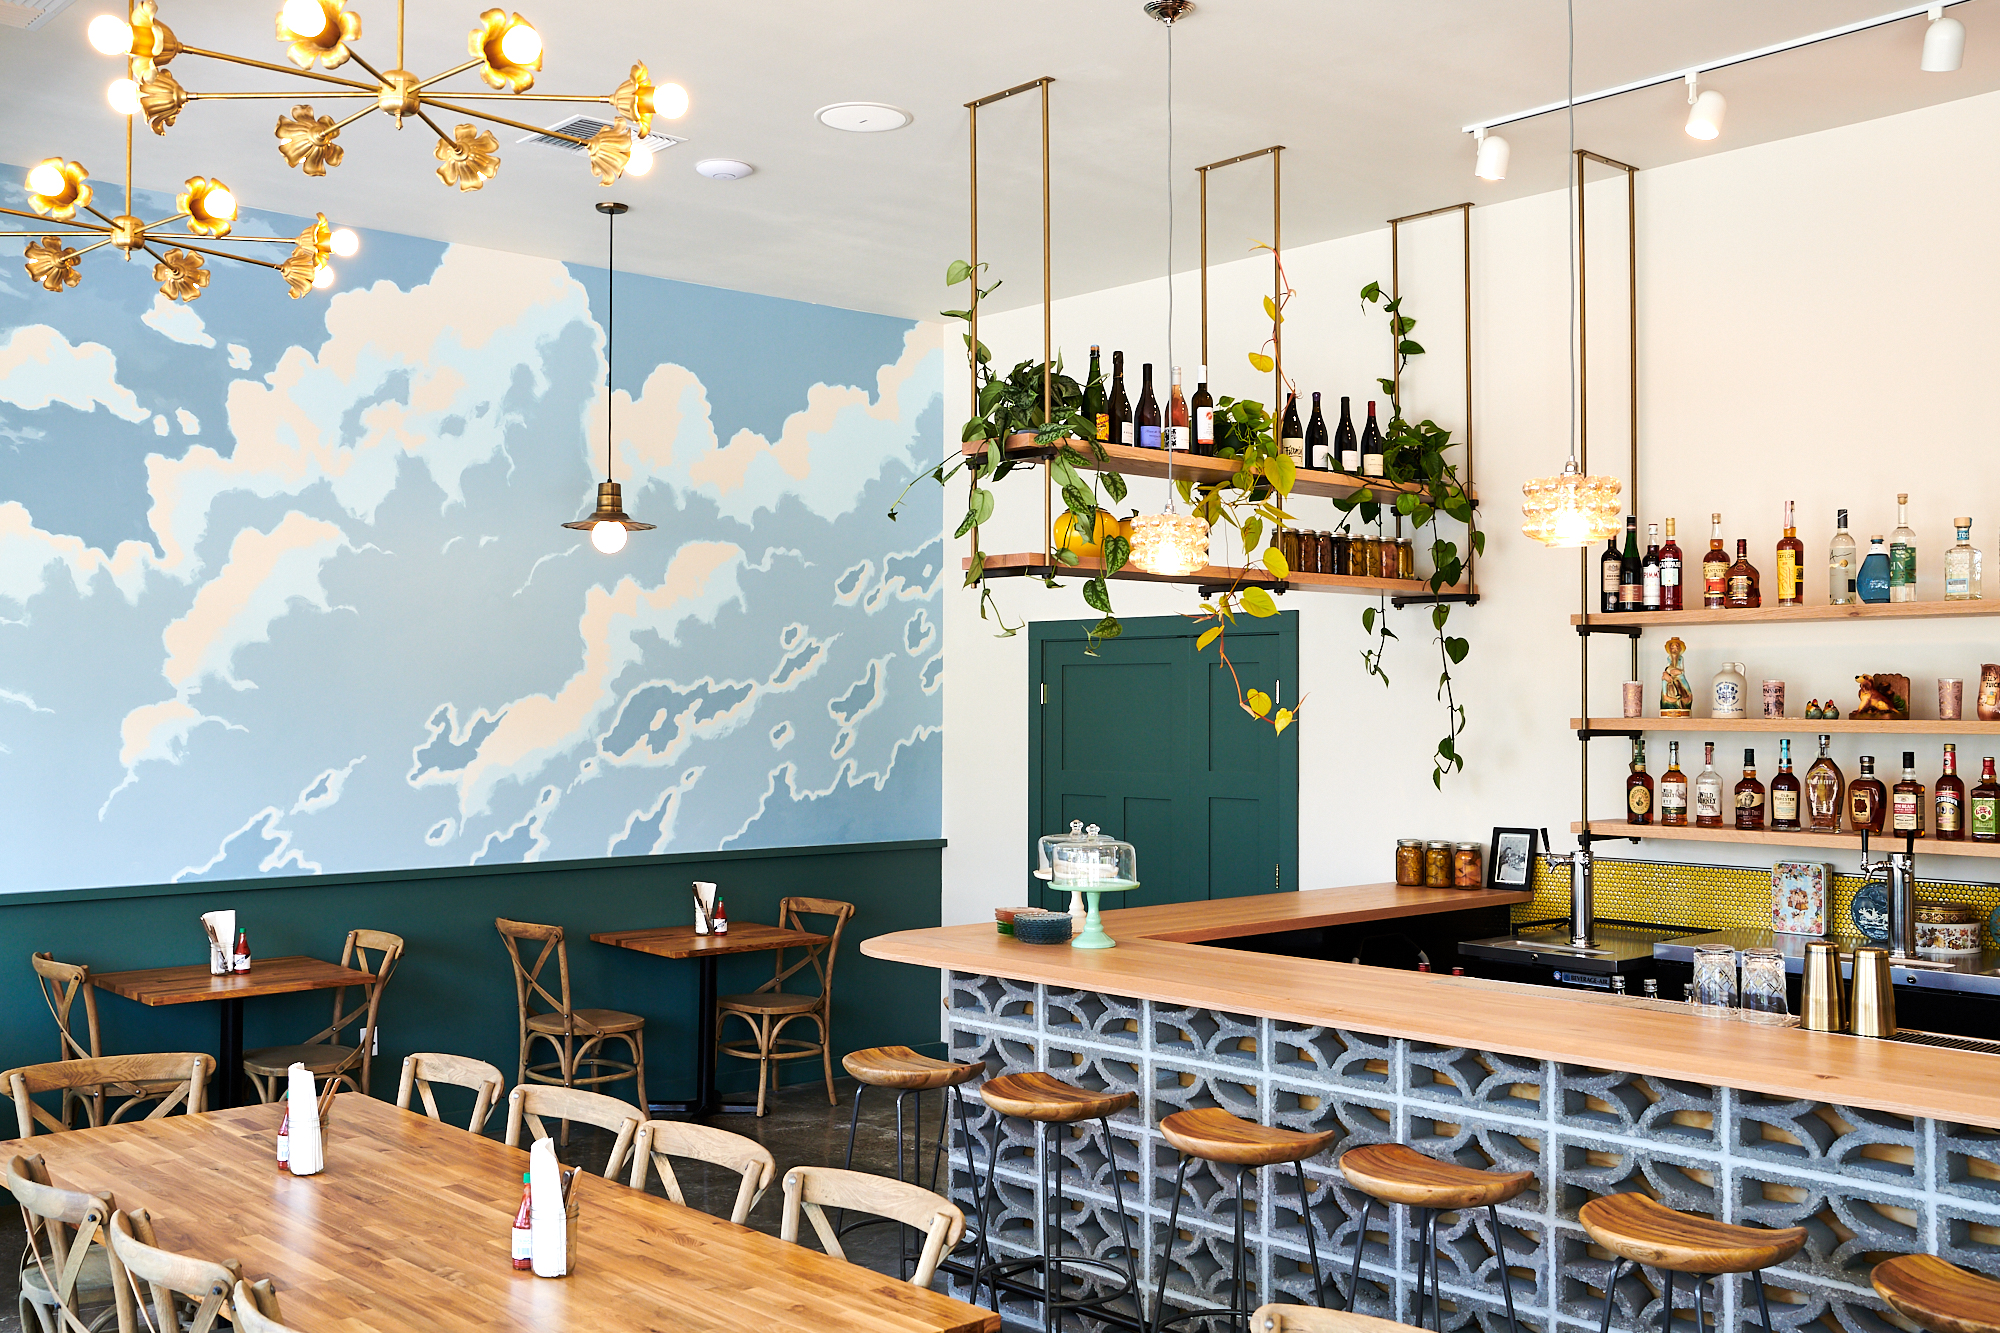 A picture of the blue interiors of Yonder, with wooden stools lining up at a bar